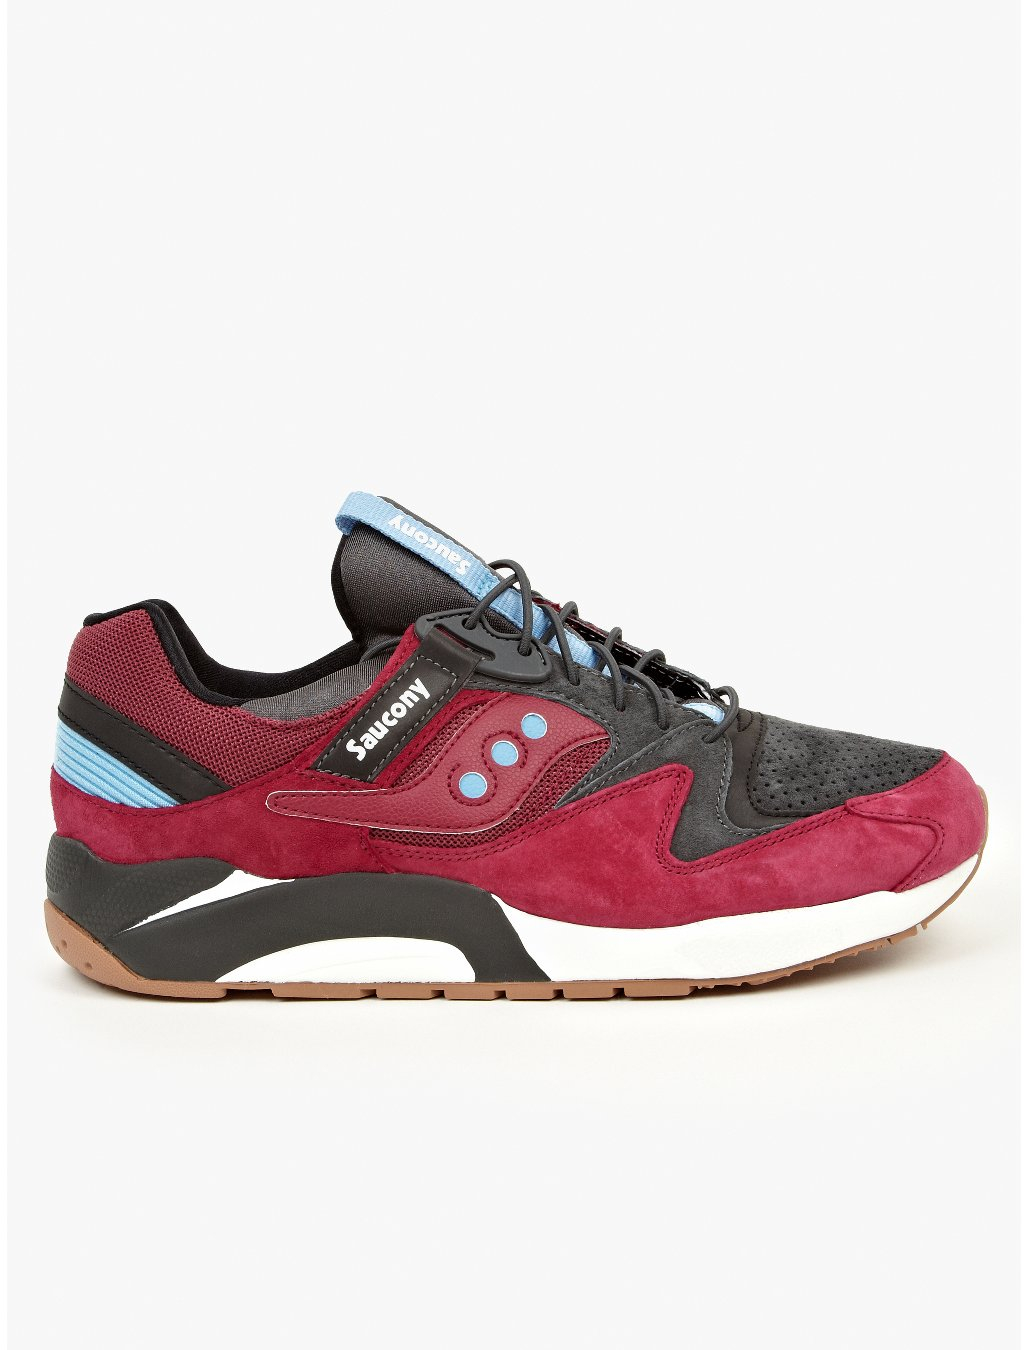 Compare Mens Saucony Footwear at All the Shoes.